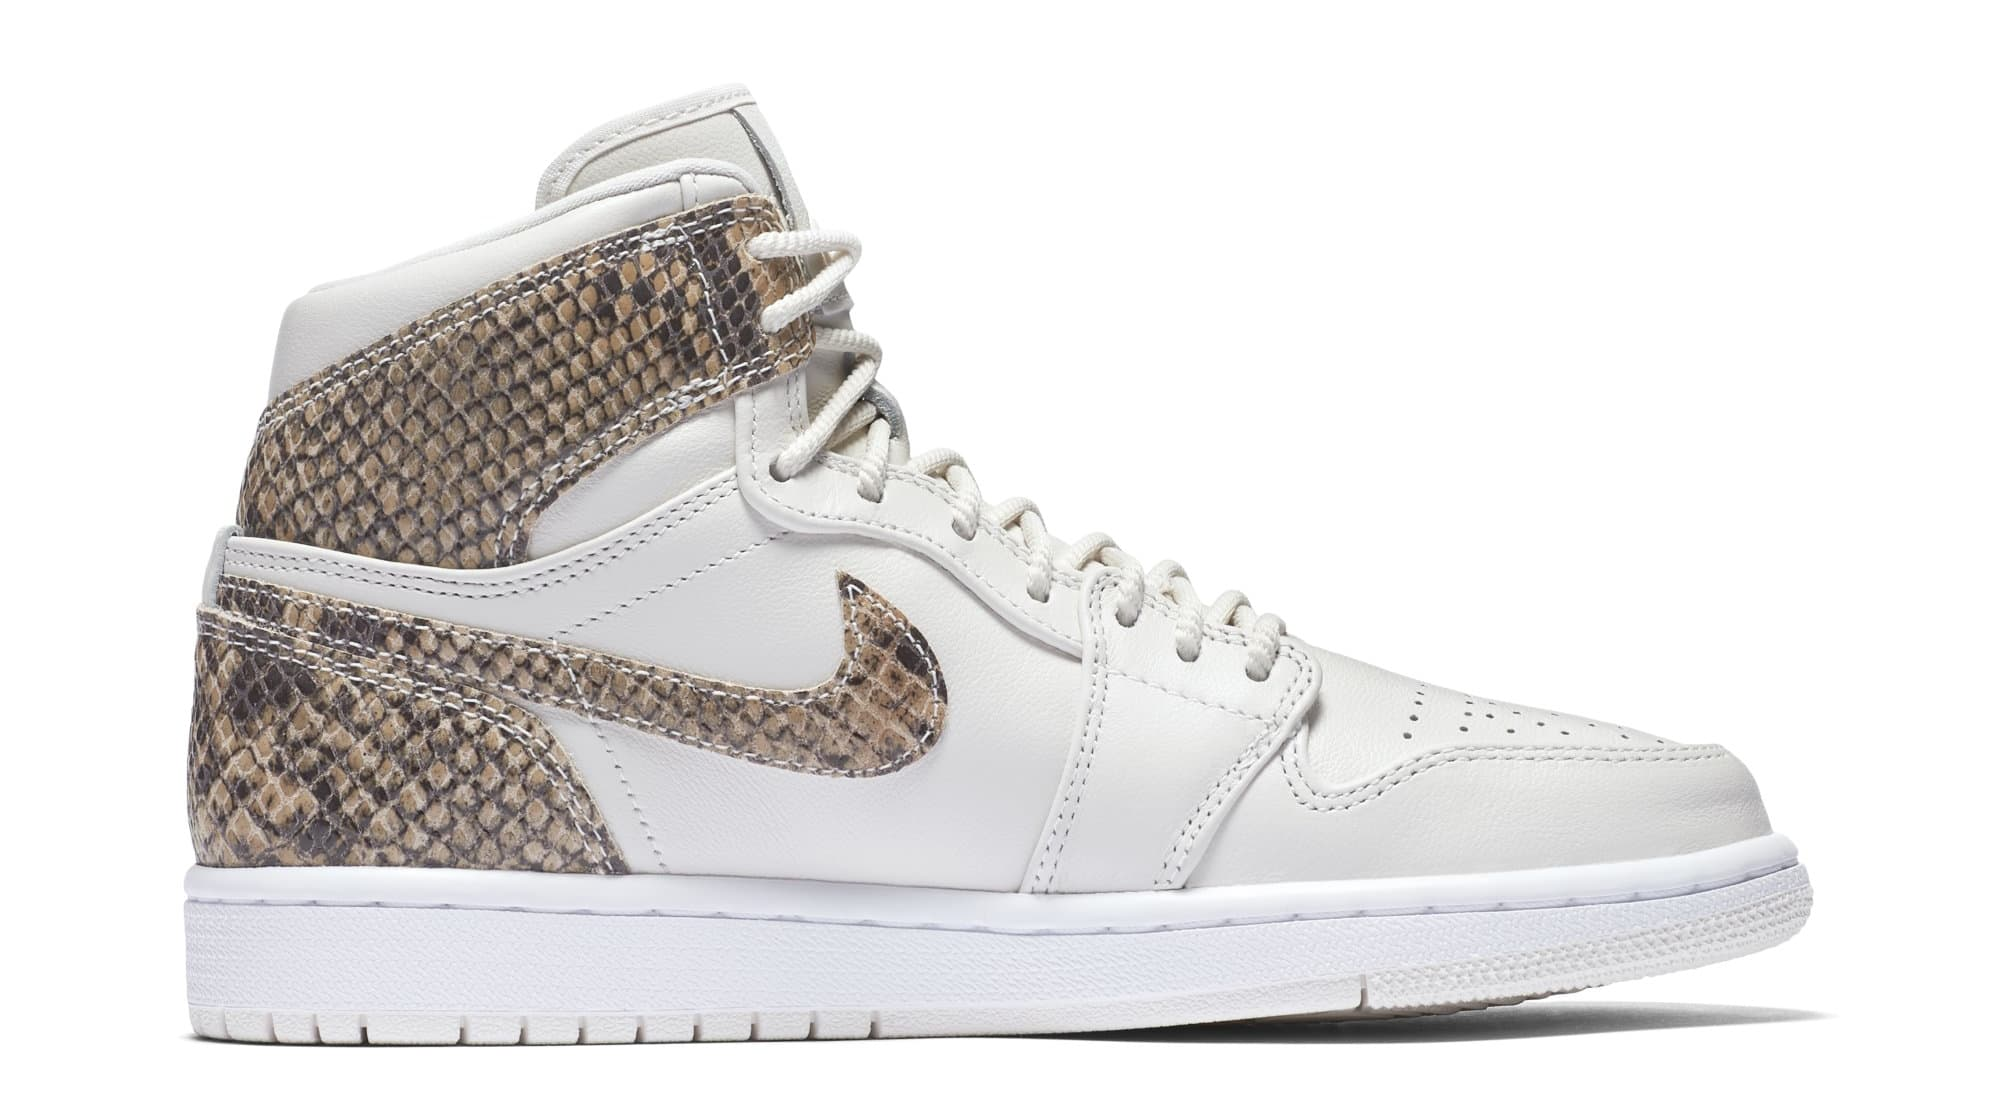 Air Jordan 1 Retro High Premium Women's Snake 'Phantom/White' AH7389-004 (Medial)